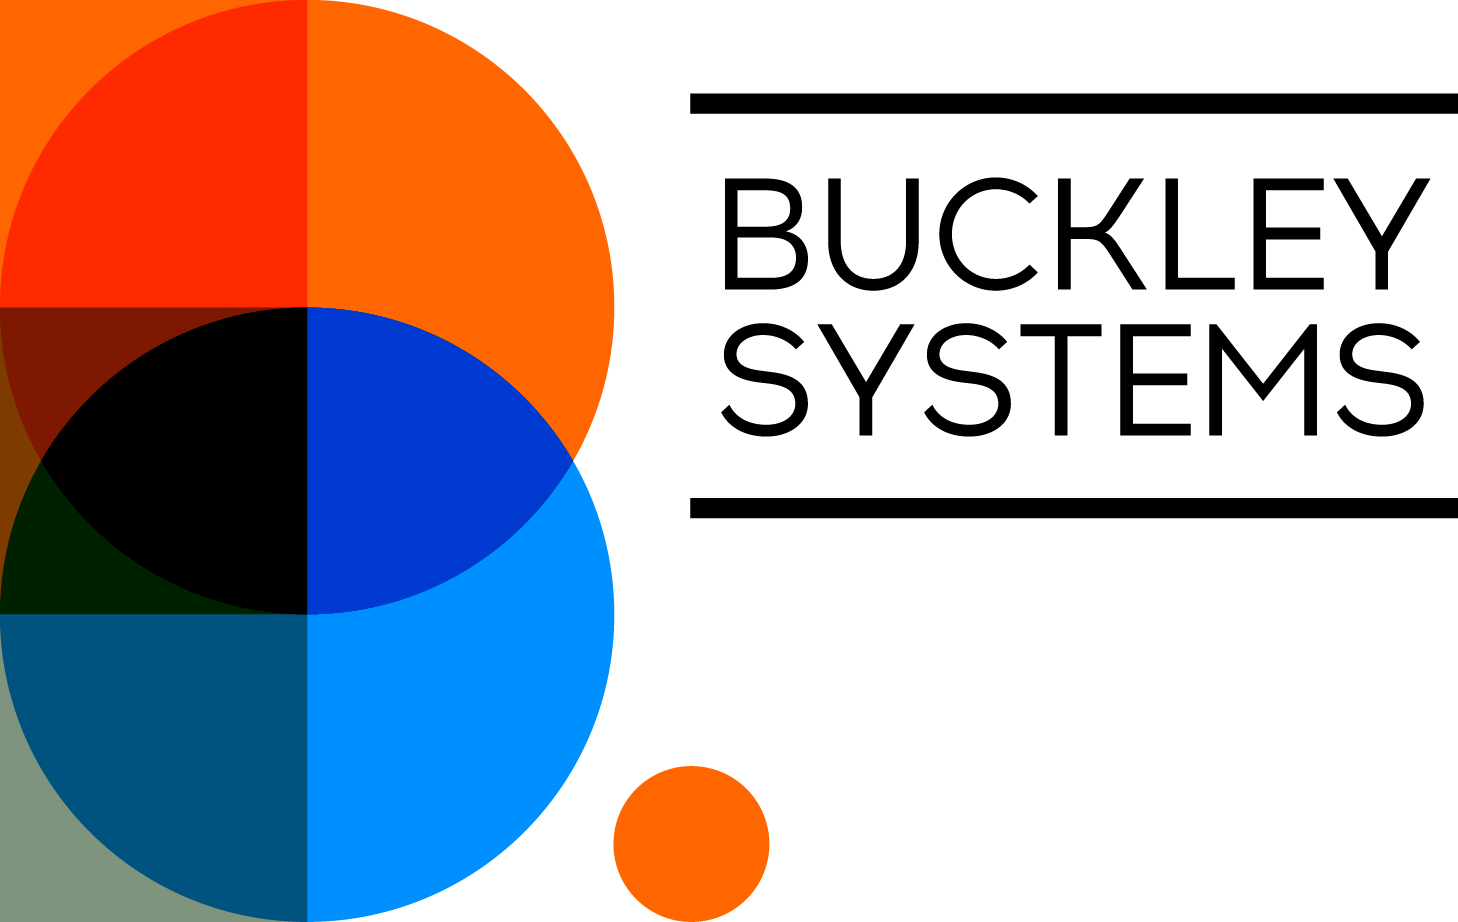 Buckley Systems